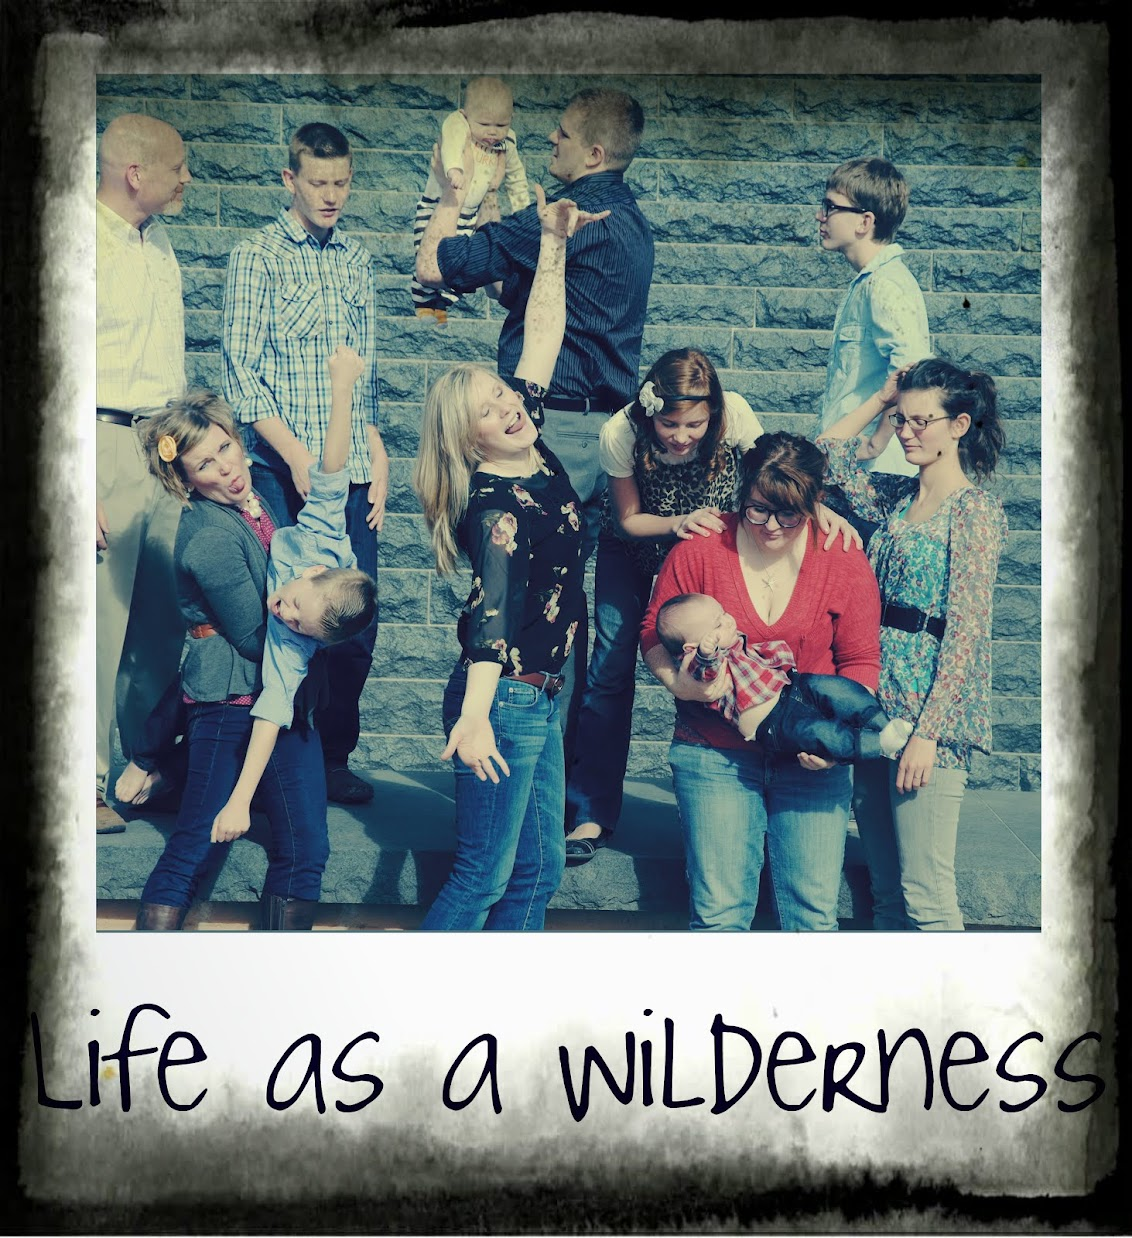 Life as a Wilderness